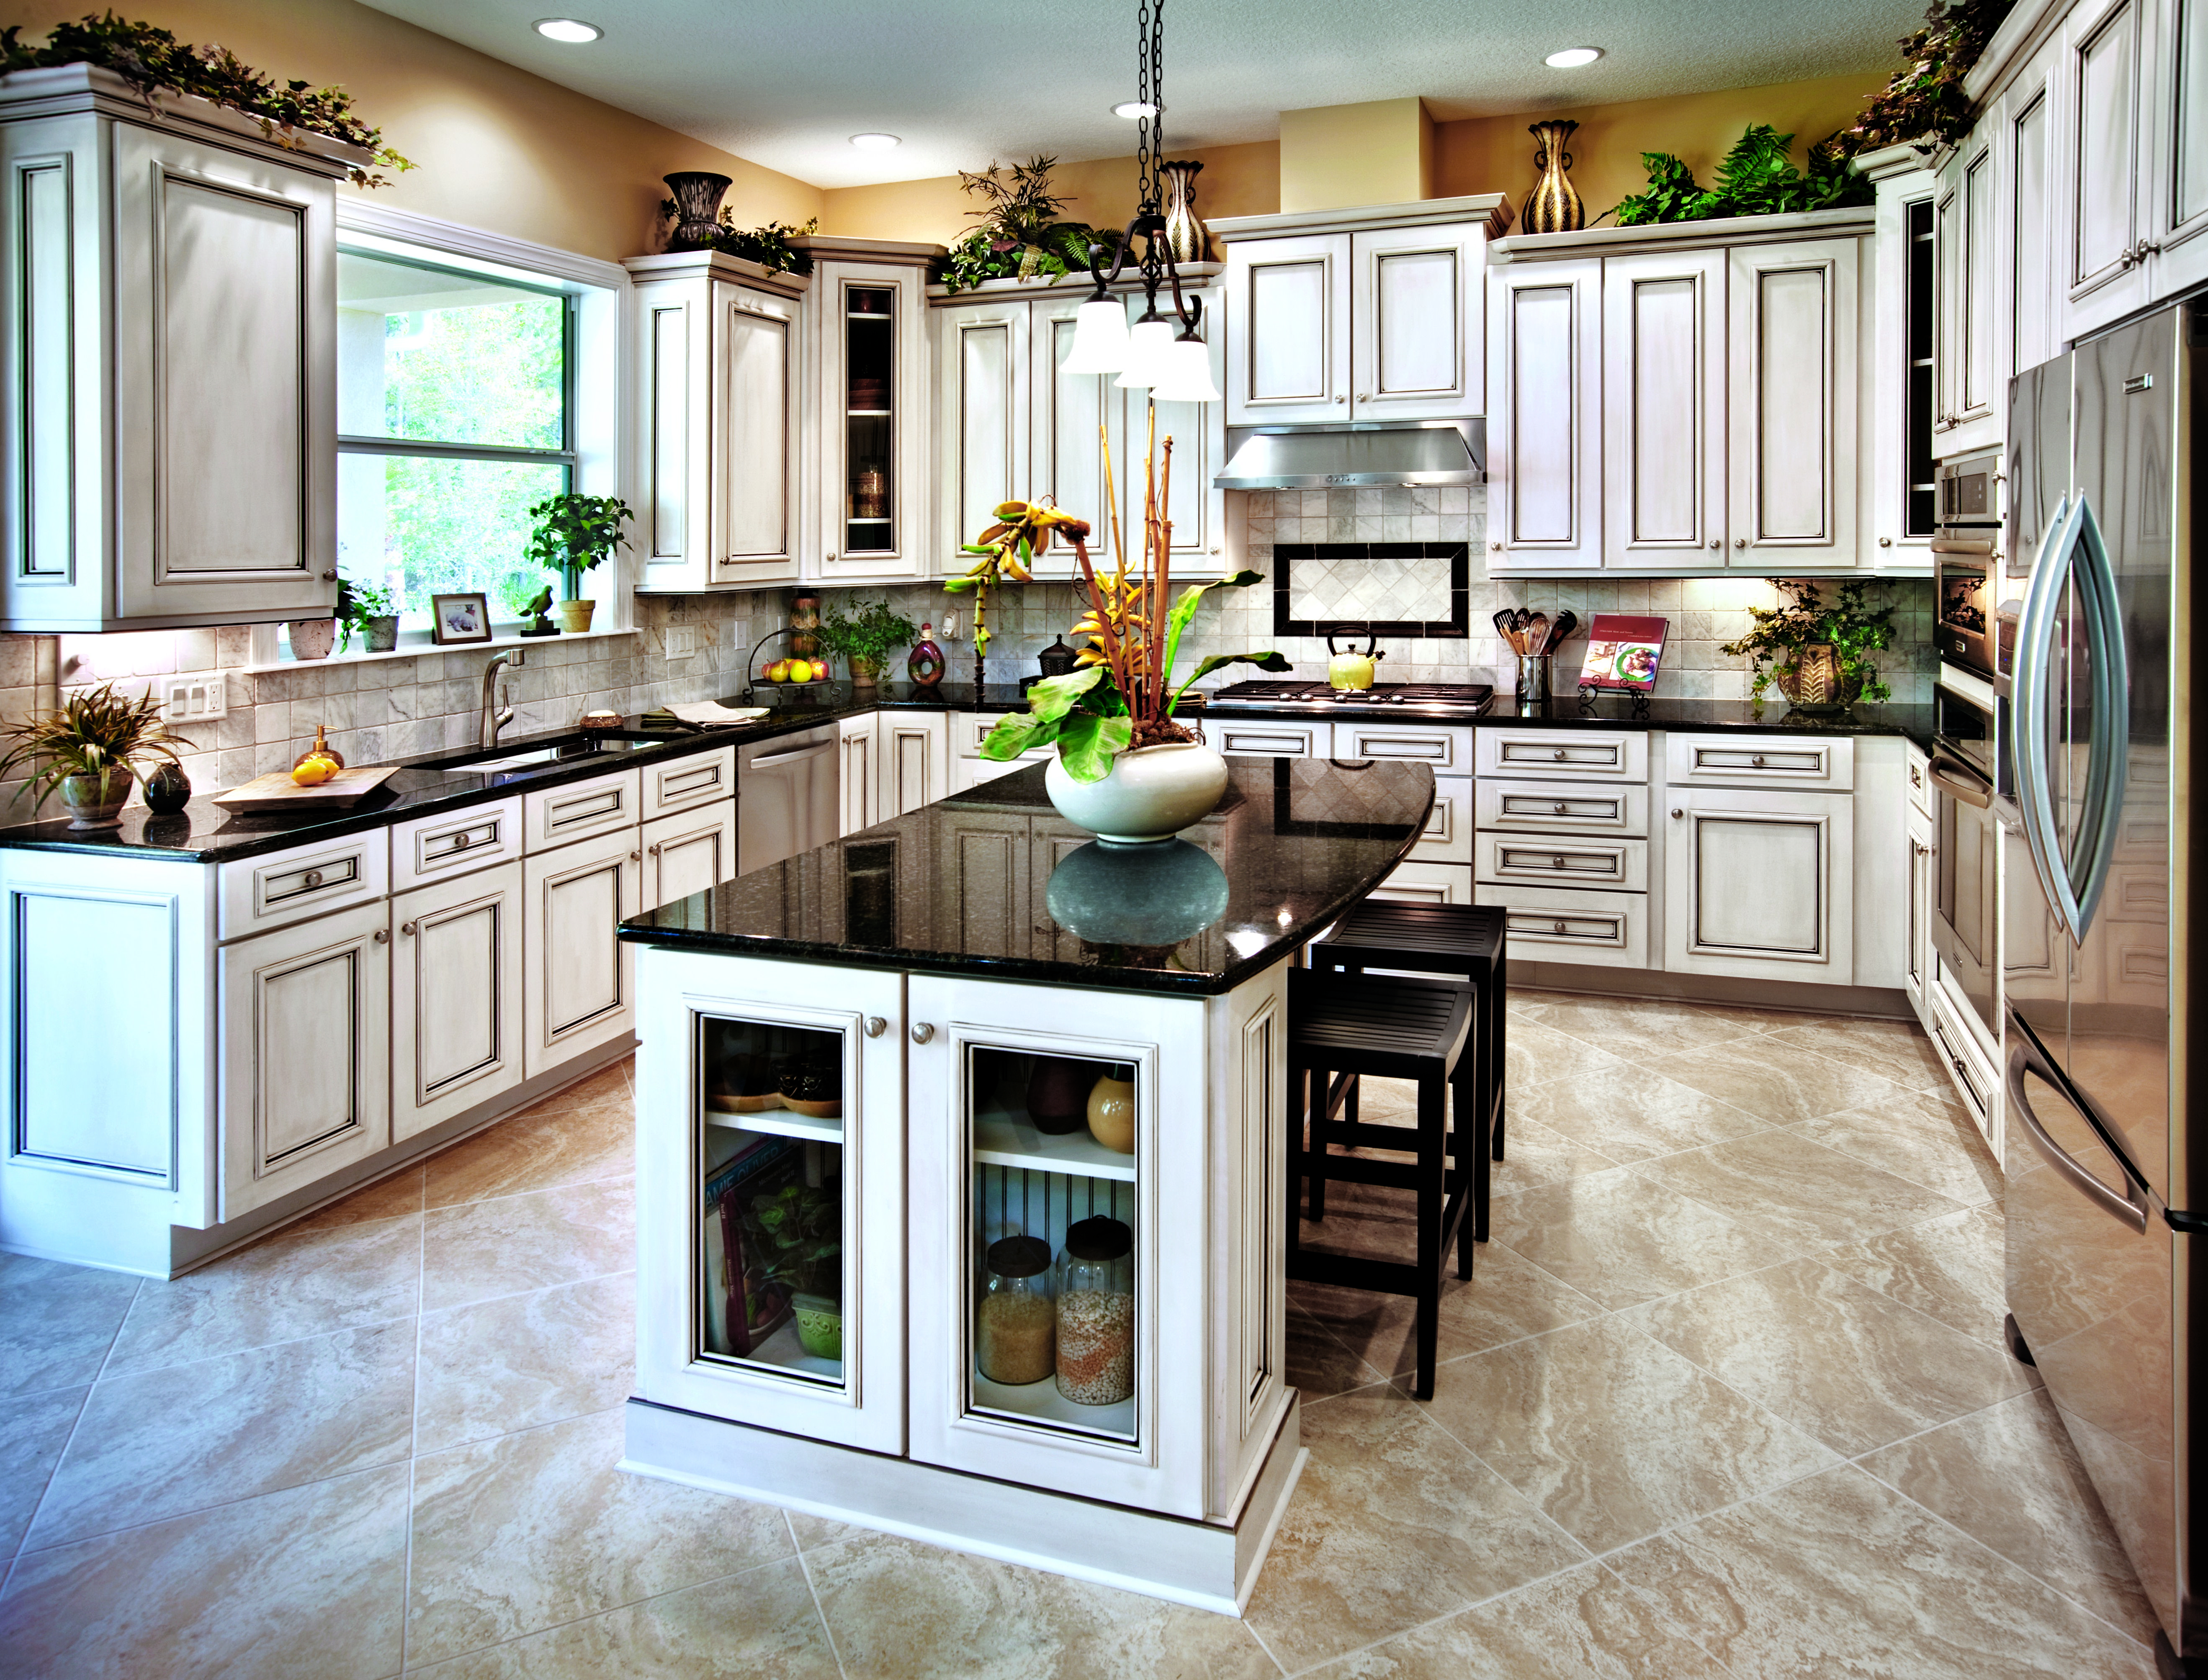 Florida Luxury New Homes For Sale By Toll Brothers Dream Kitchens Luxury Home Model Homes